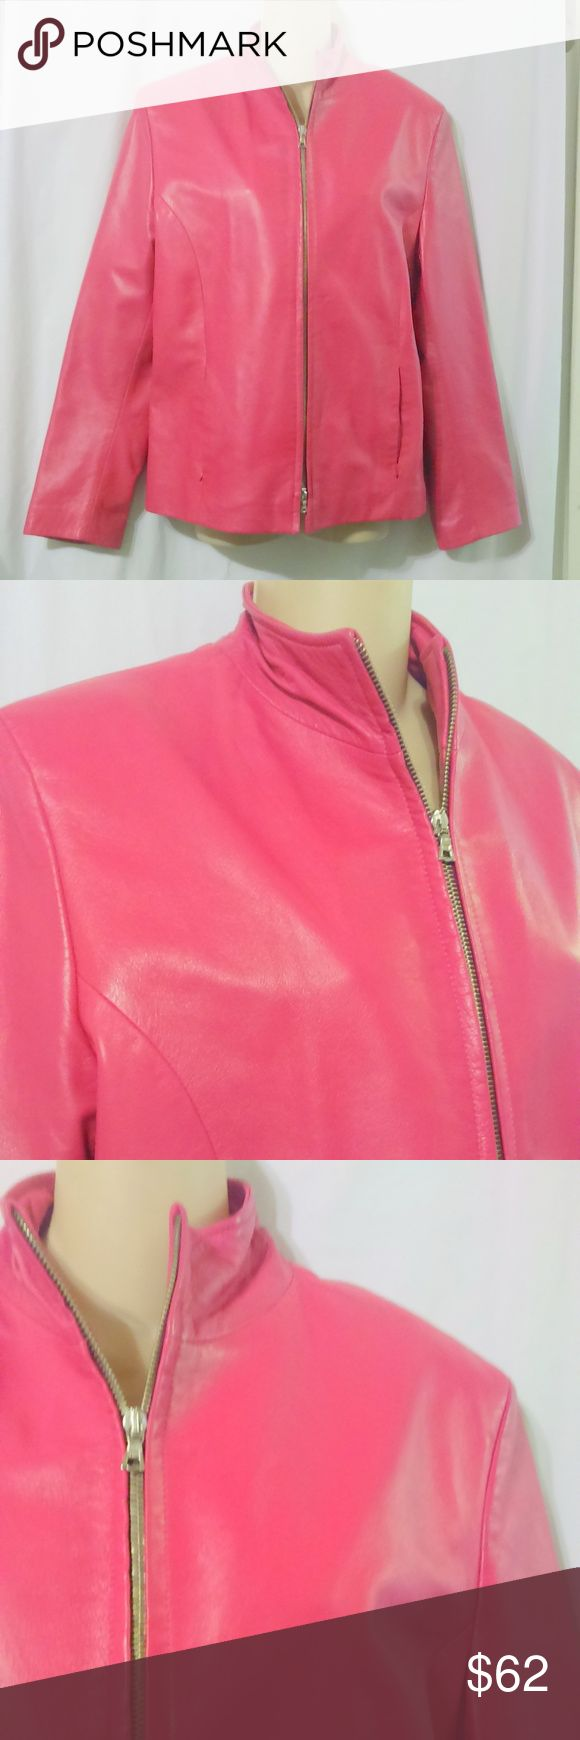 """Moda In Pelle Firenze Hot Pink Leather Jacket This gorgeous leather jacket is made by Moda In Pelle Firenze and is an Italian size 50 or about a size 14 US. The jacket is done in a fully lined hot pink leather that is probably the softest leather I've ever felt. It has a zip front and zip pockets. Measurements are: Bust 42"""", waist 40"""", hips 42"""", sleeves 25"""", length 25"""". The lining does have a stain near the bottom at the back which I've shown in the last picture. Other than that jacket is in…"""